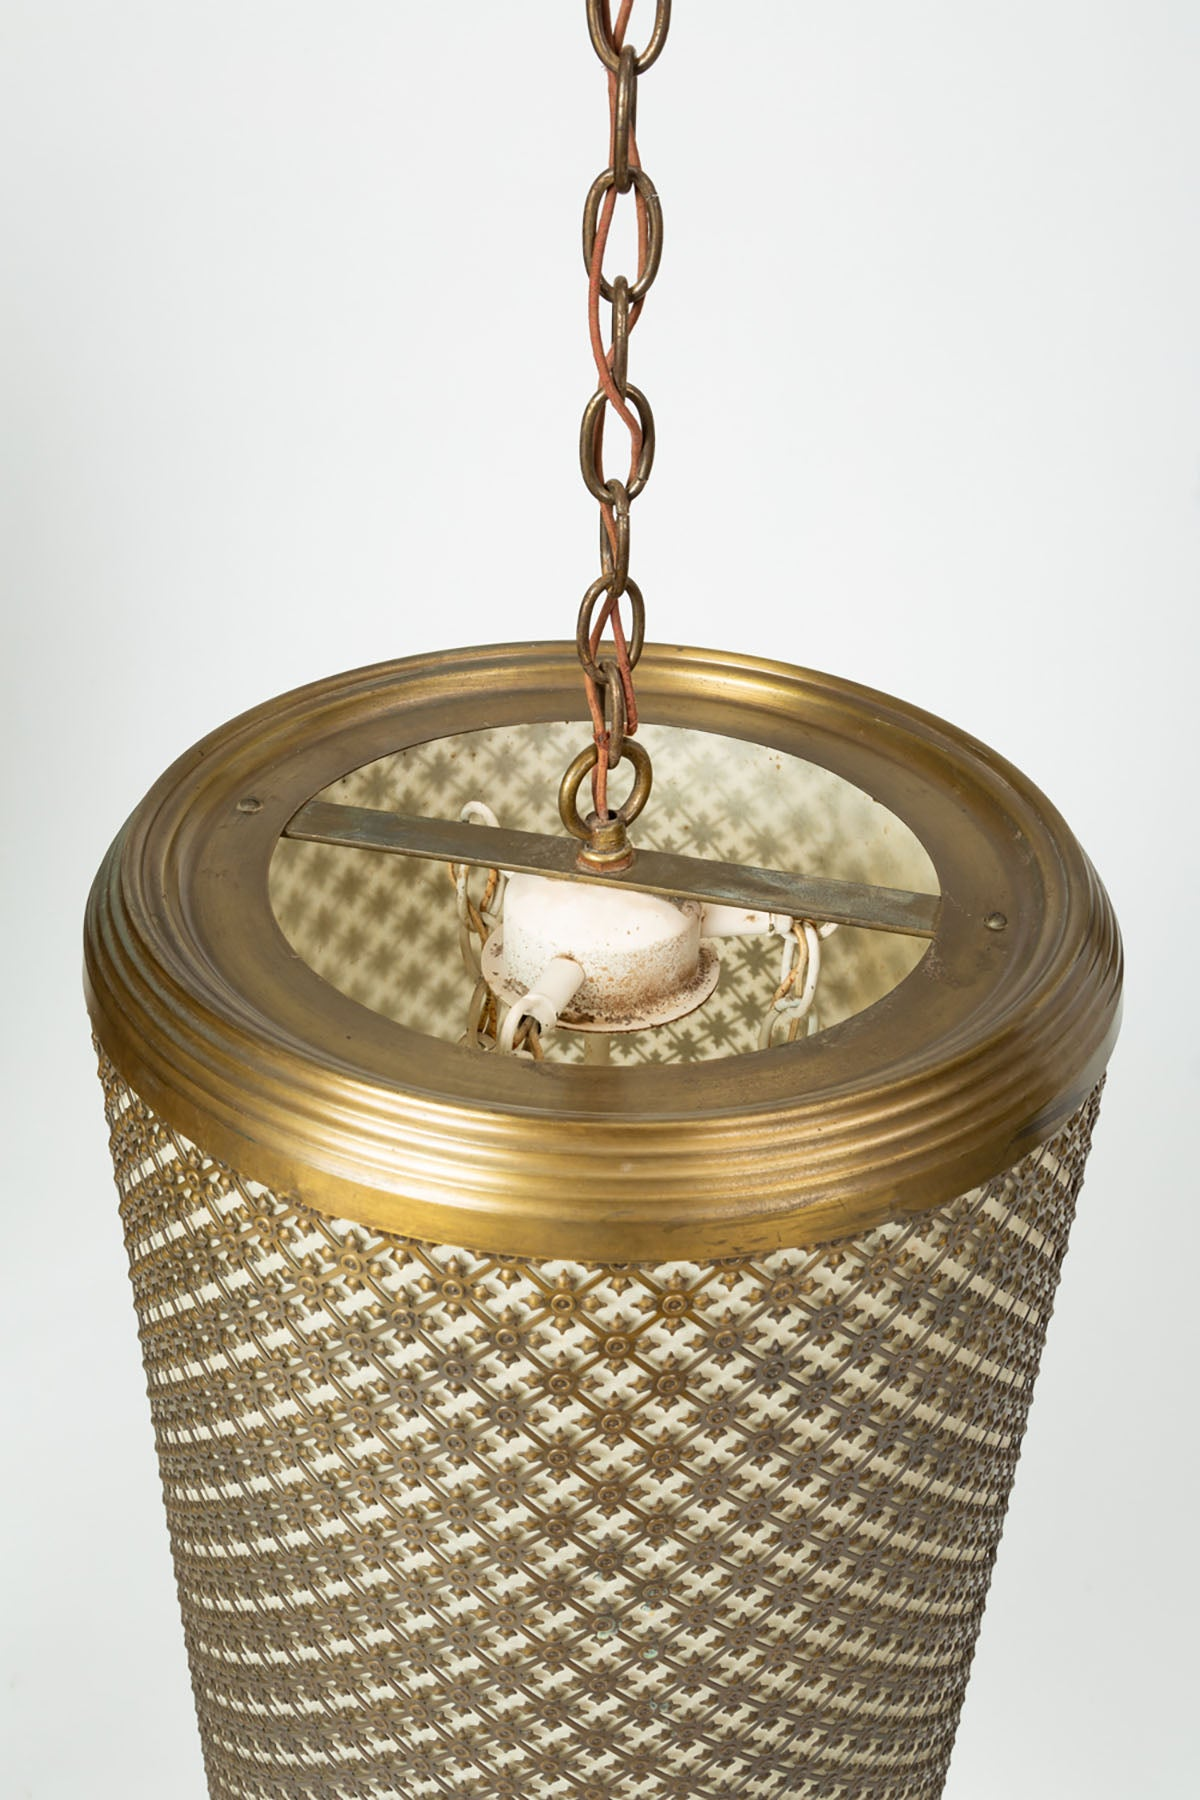 Metal Grated Pendant Light Fixture by The Feldman Company